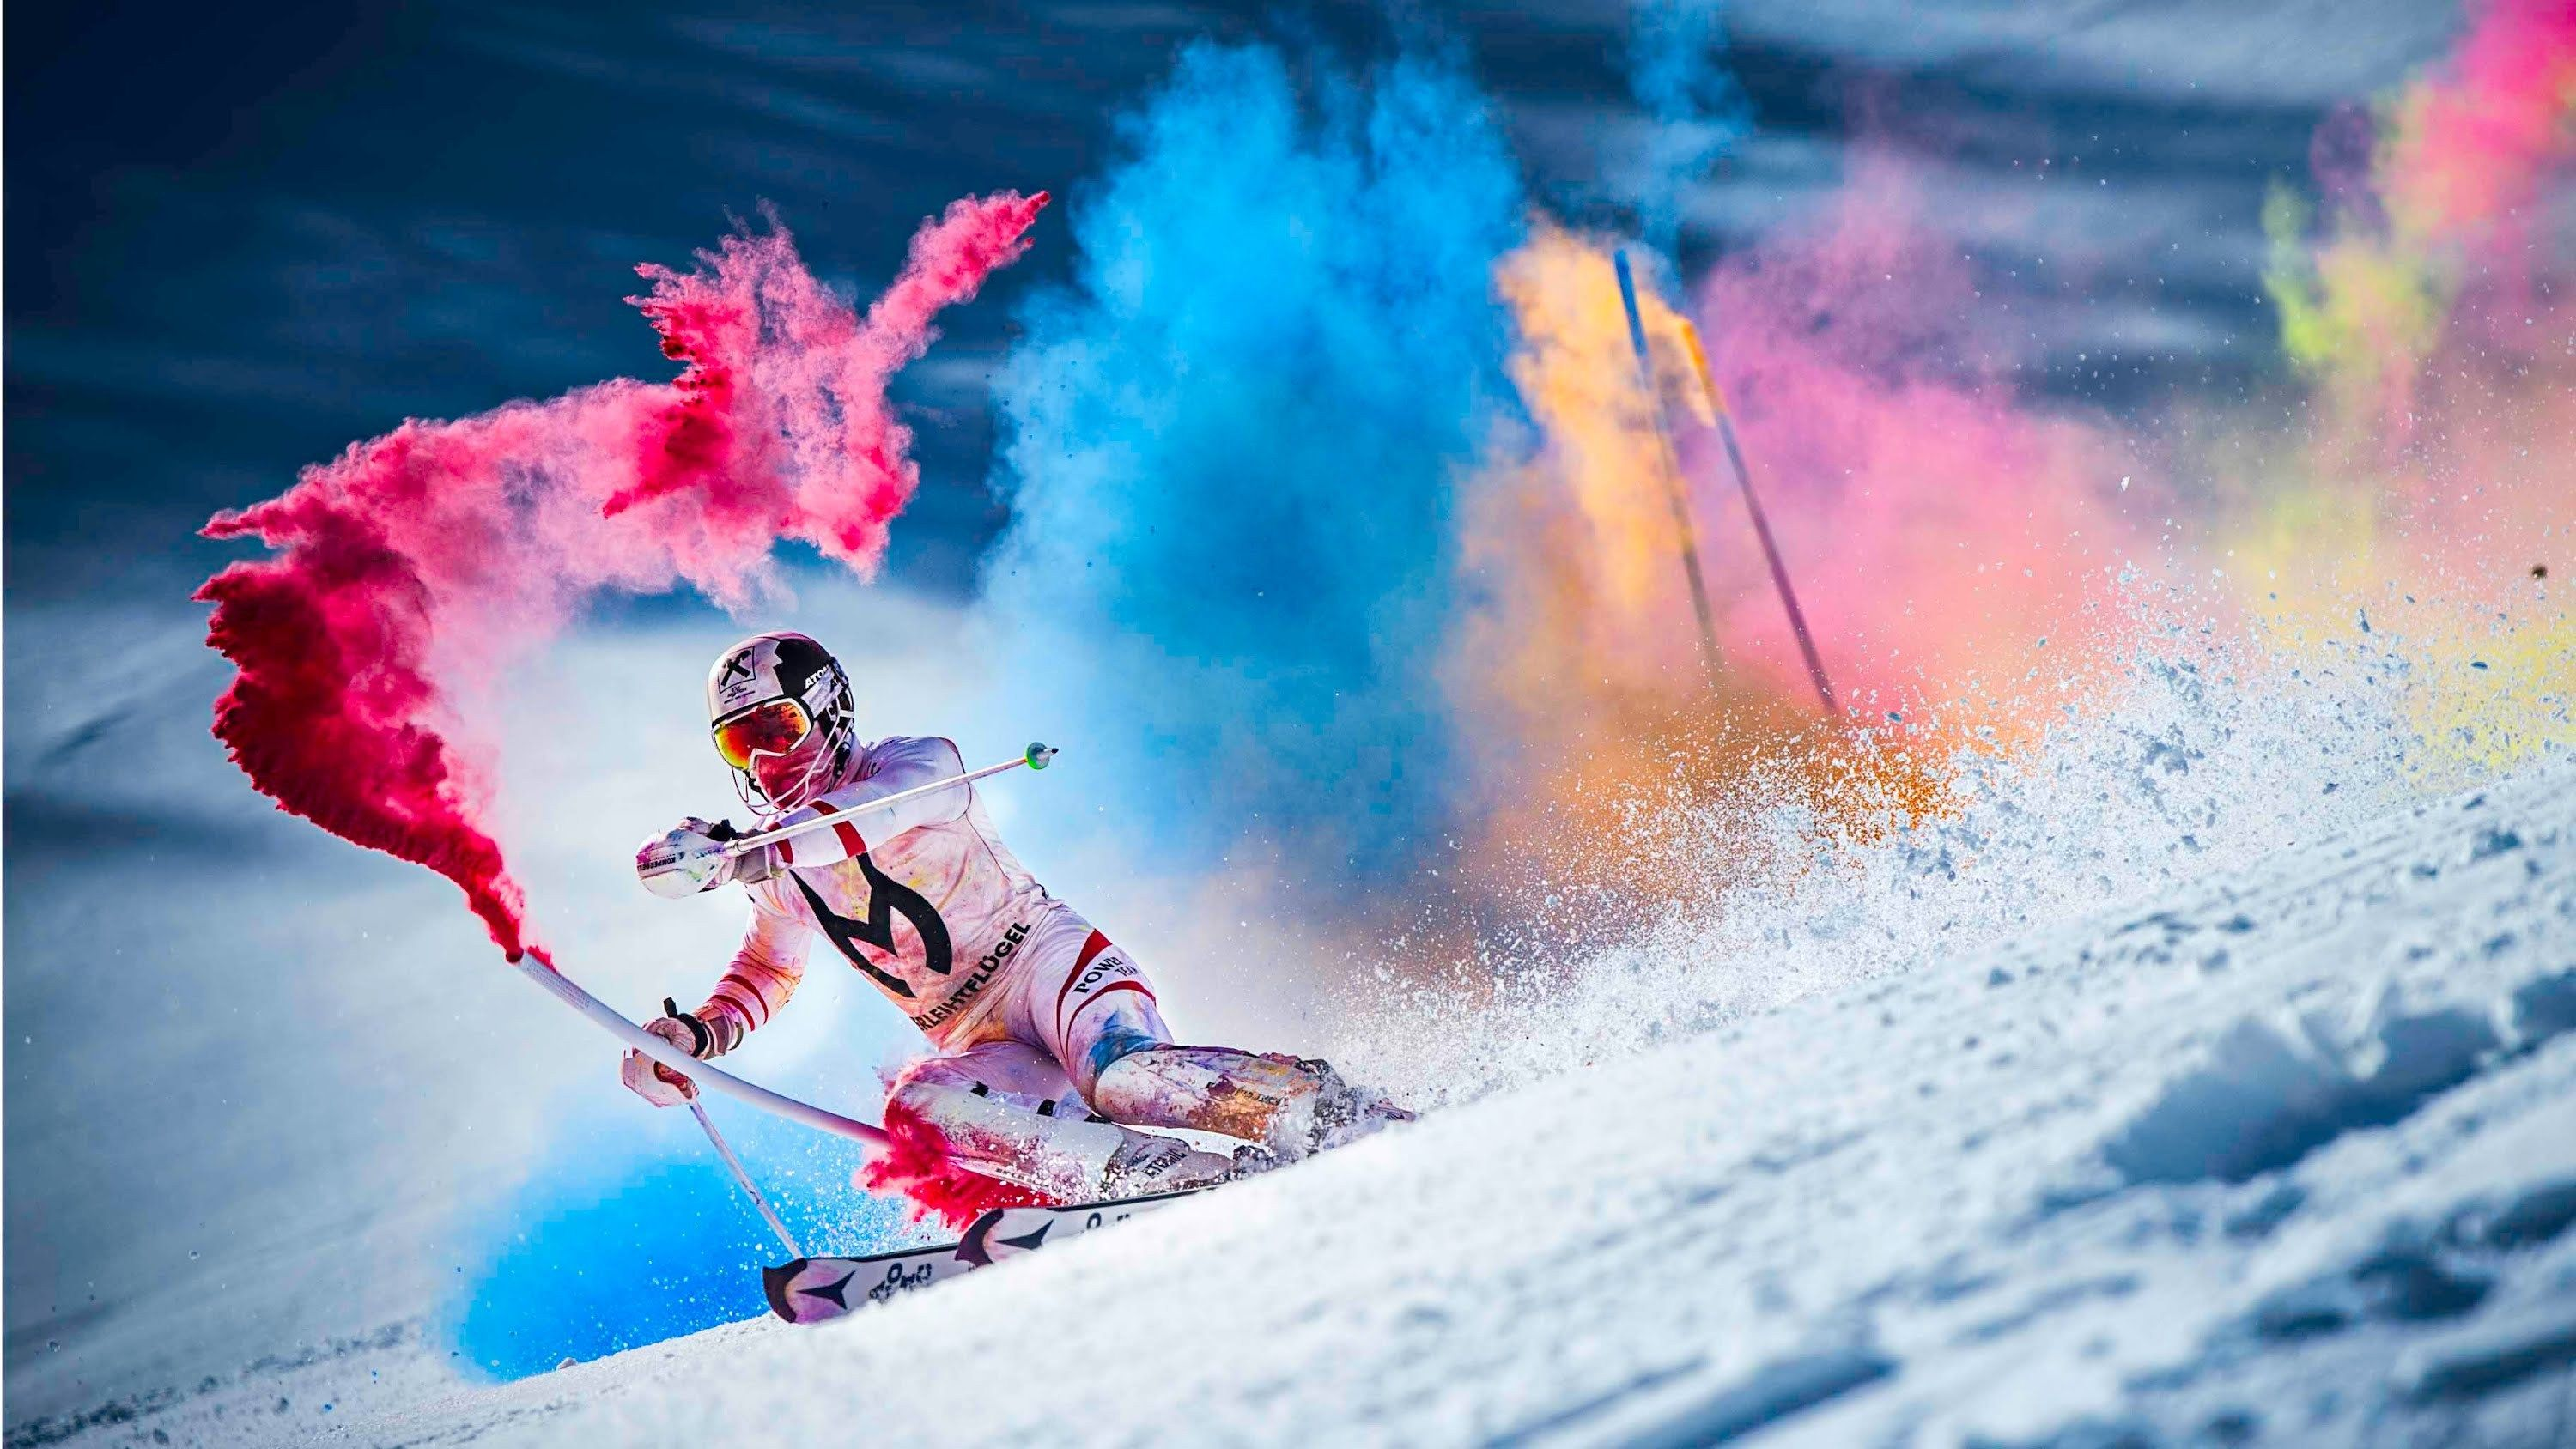 Skiing Wallpapers 1080p High Quality 634 KB